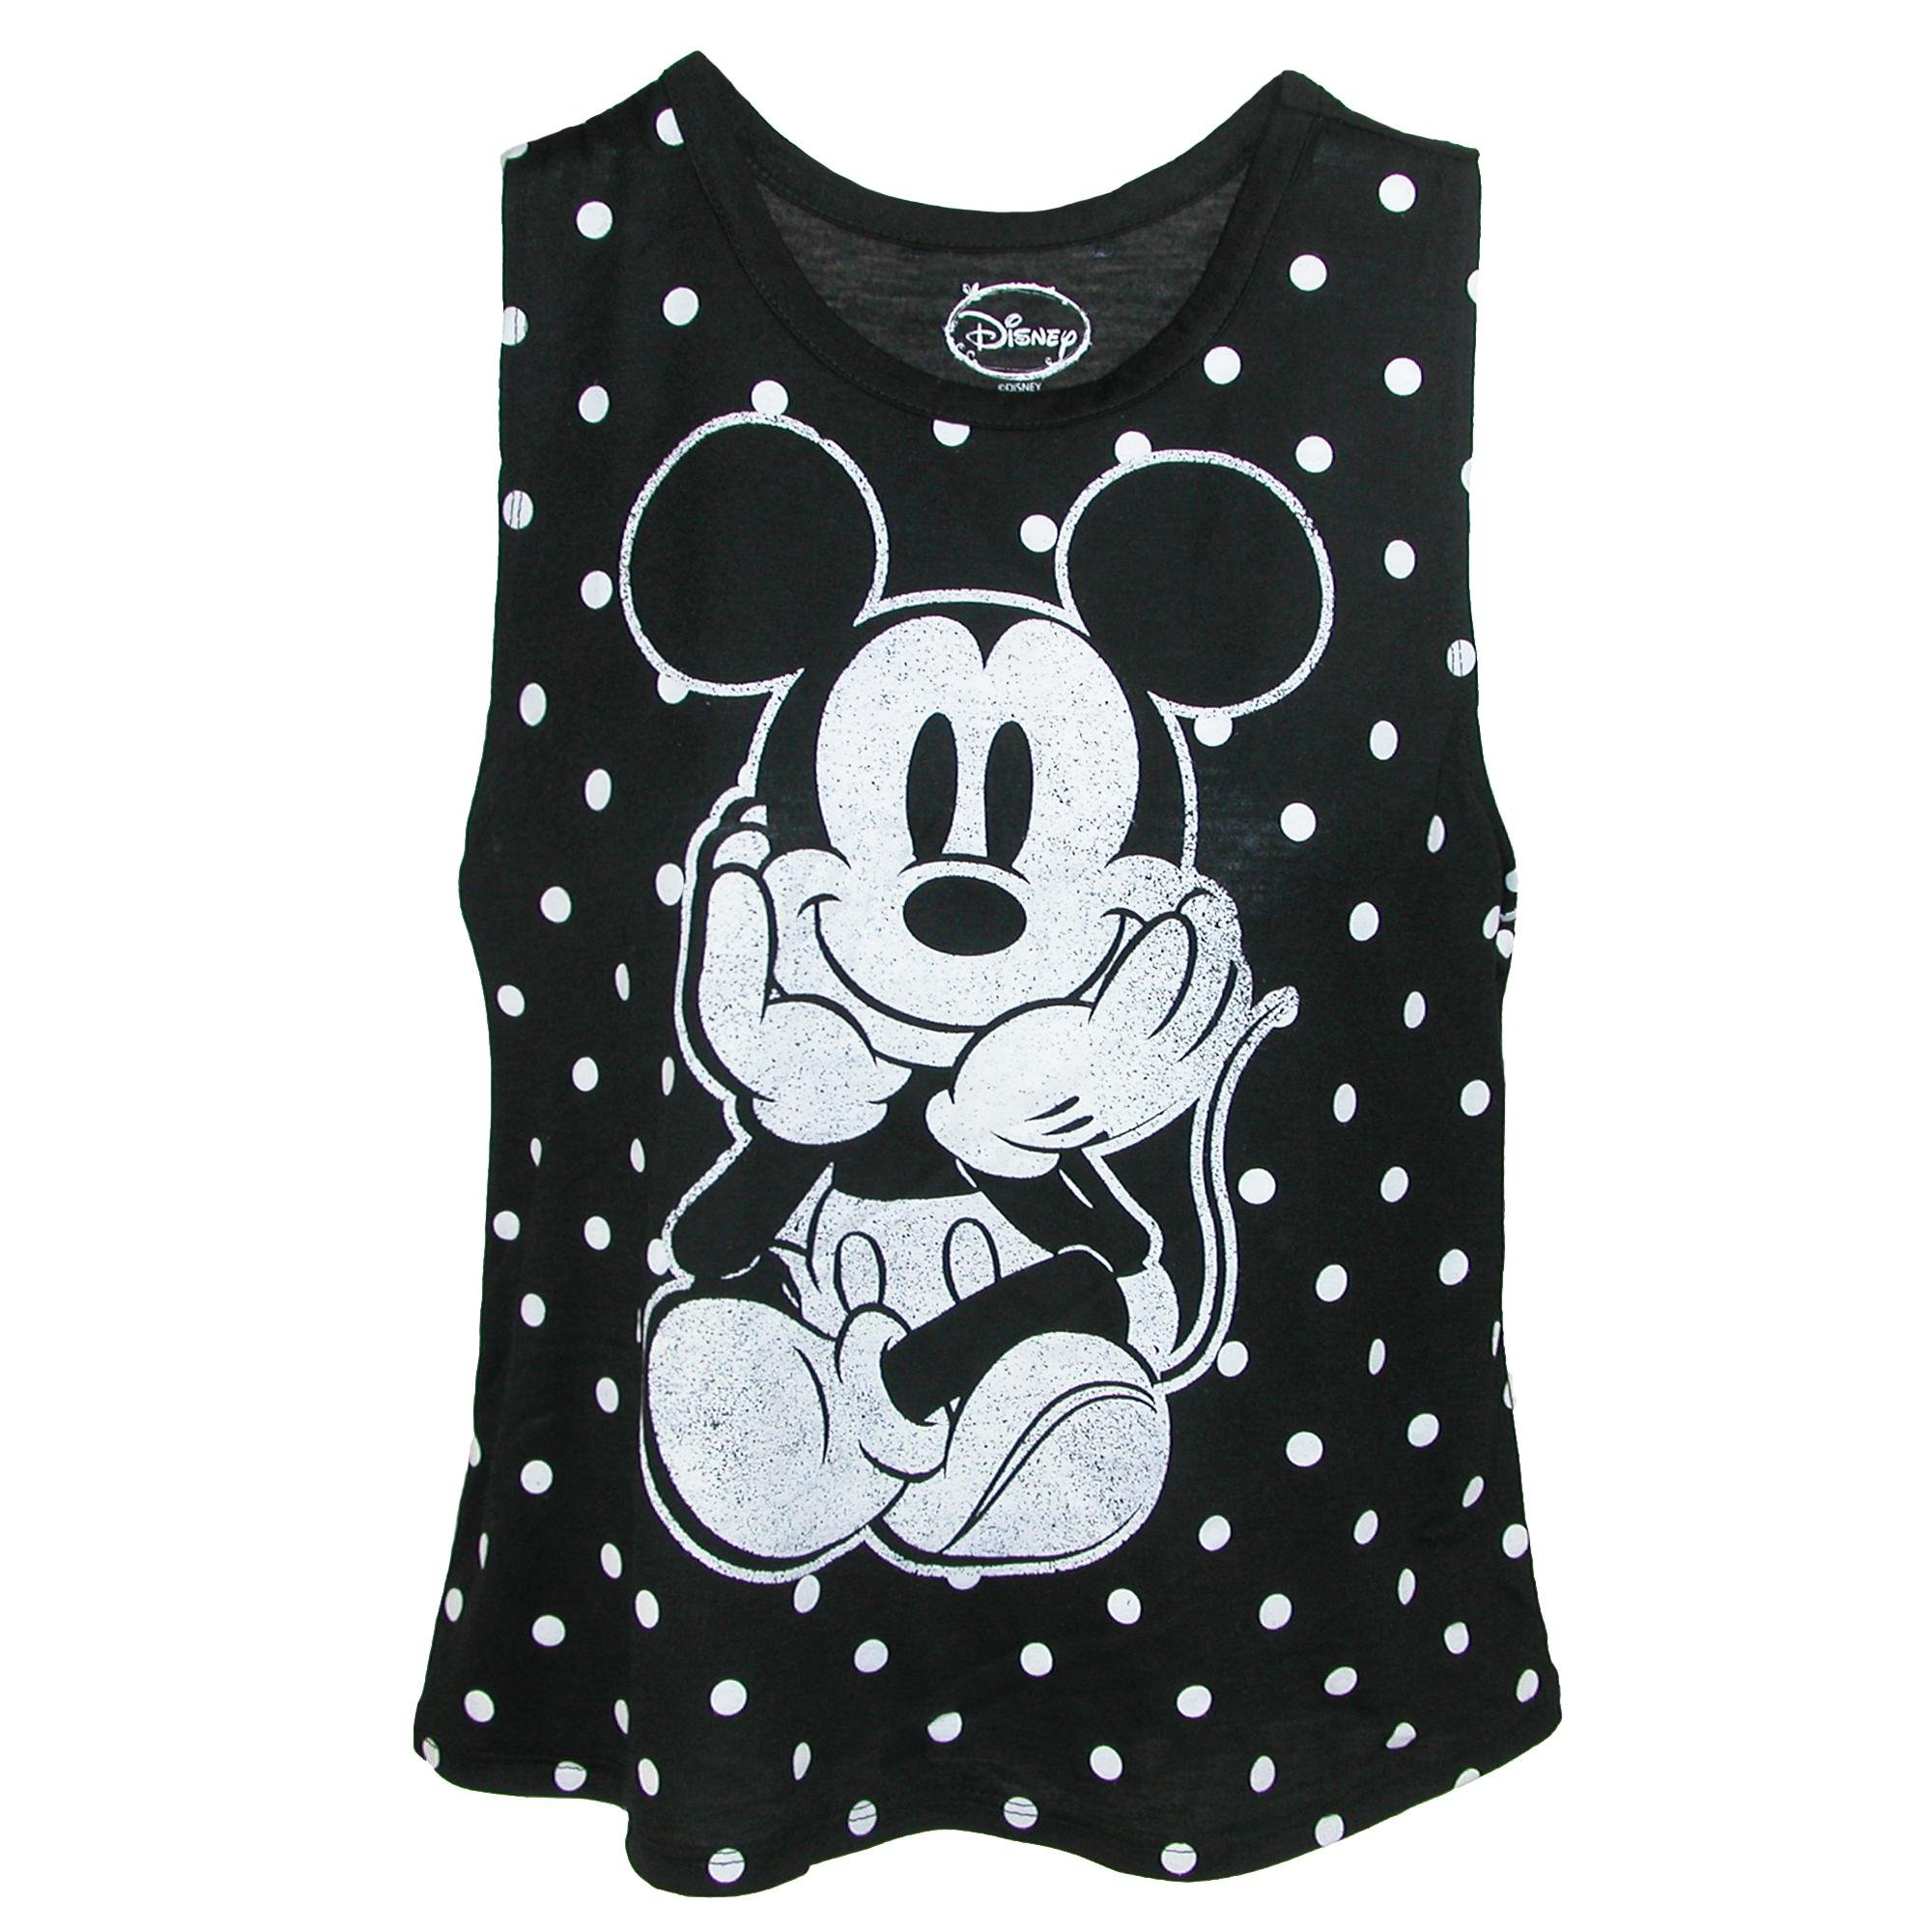 Disney Adult Solo Mickey Mouse Tank Top Black White (Medium)